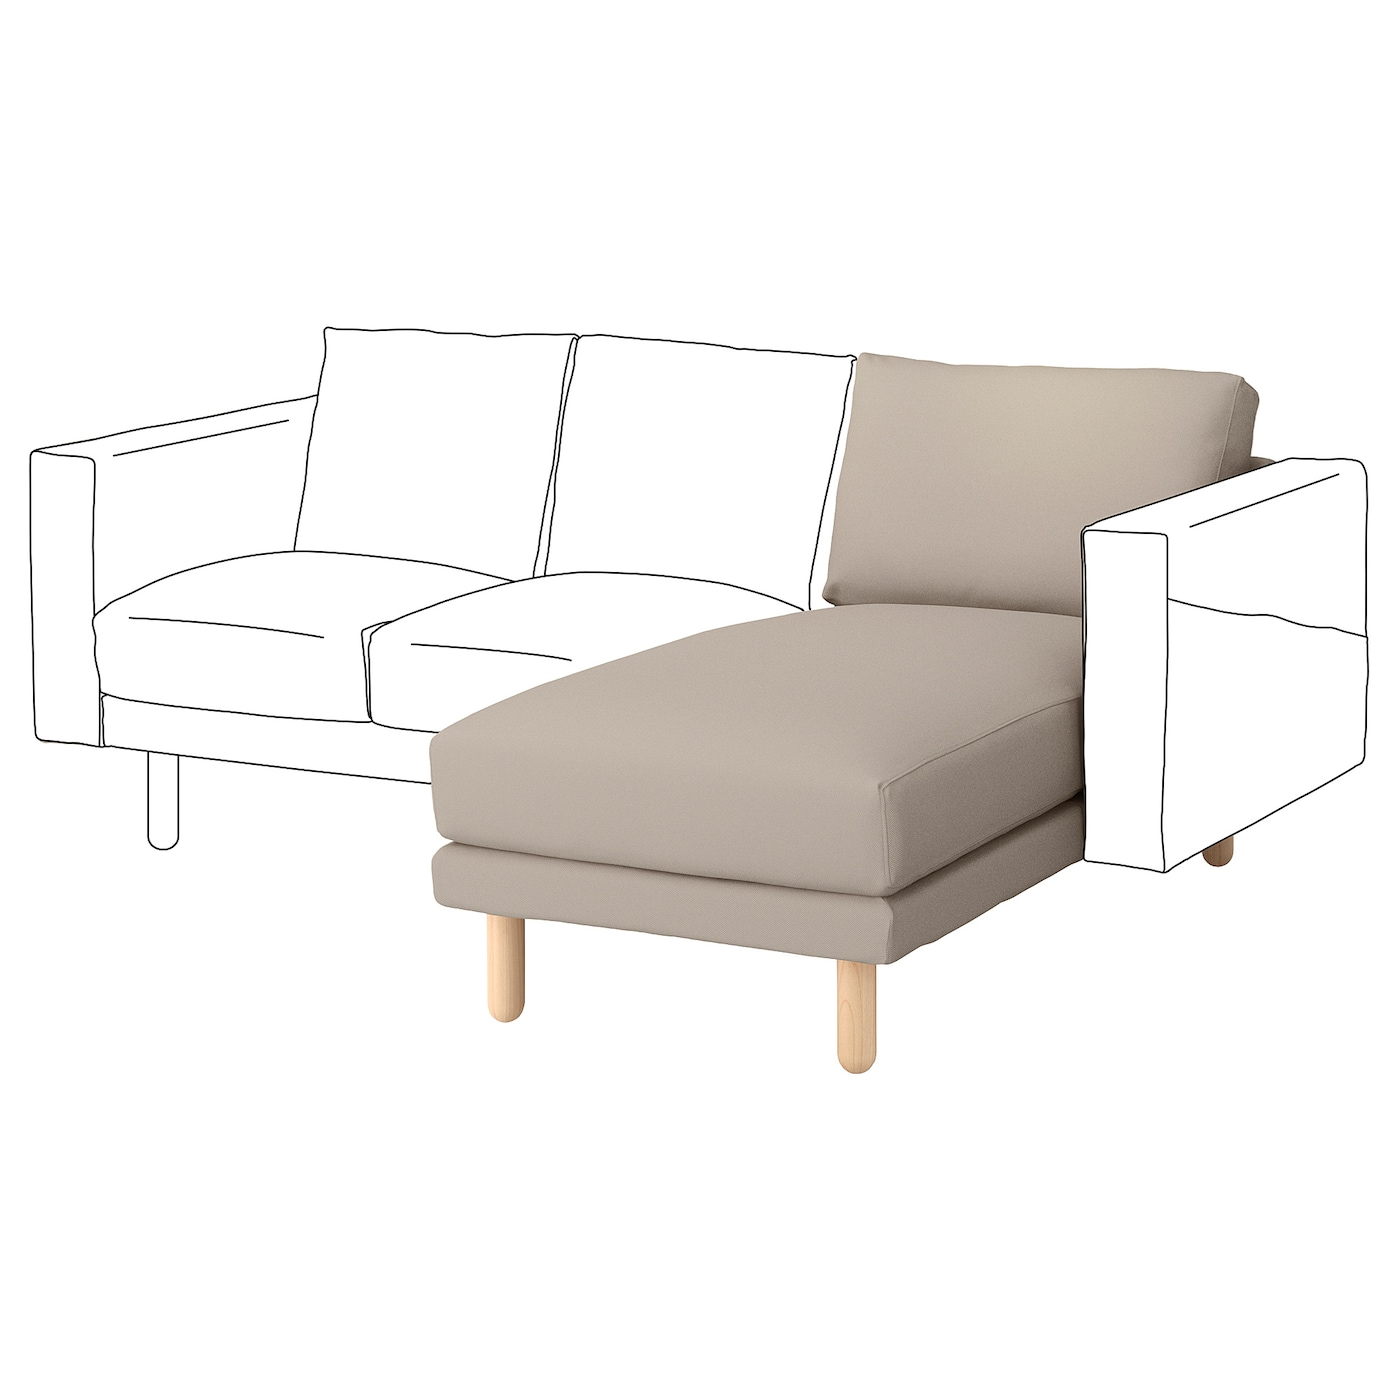 Norsborg cover chaise longue section gr sbo beige ikea for Chaise longue jardin ikea